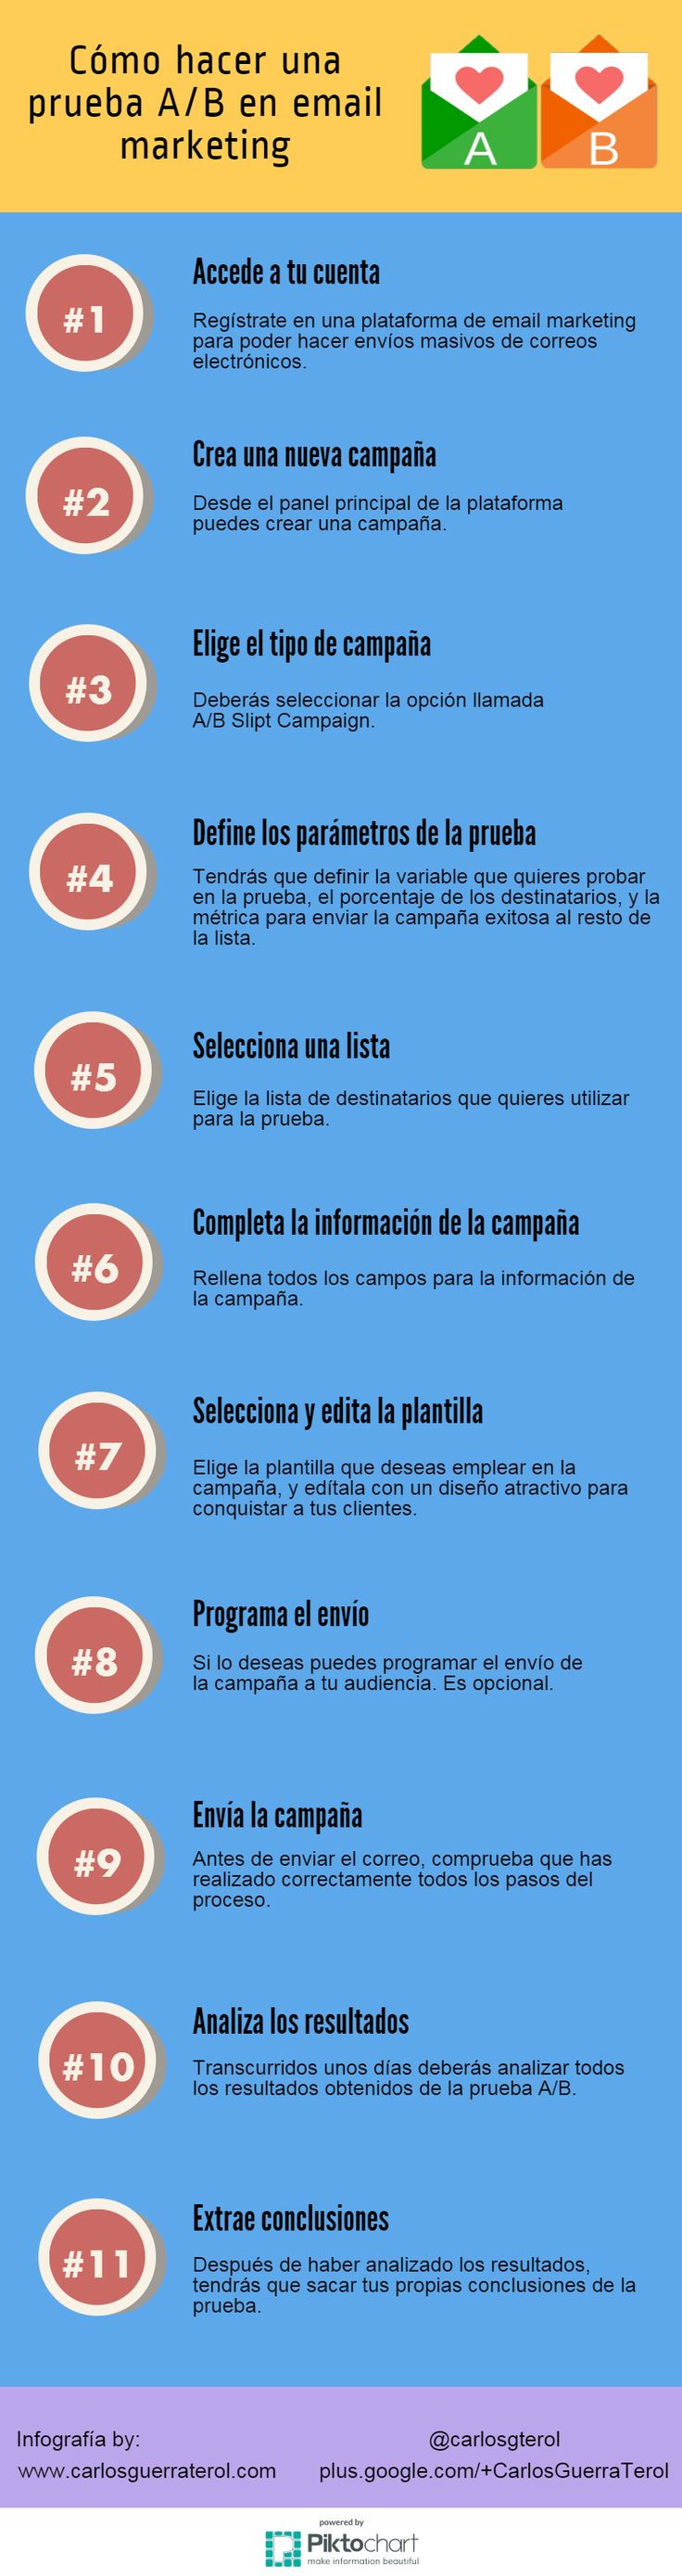 Cómo hacer una prueba A/B en email marketing #infografia #email #marketing #newsletter